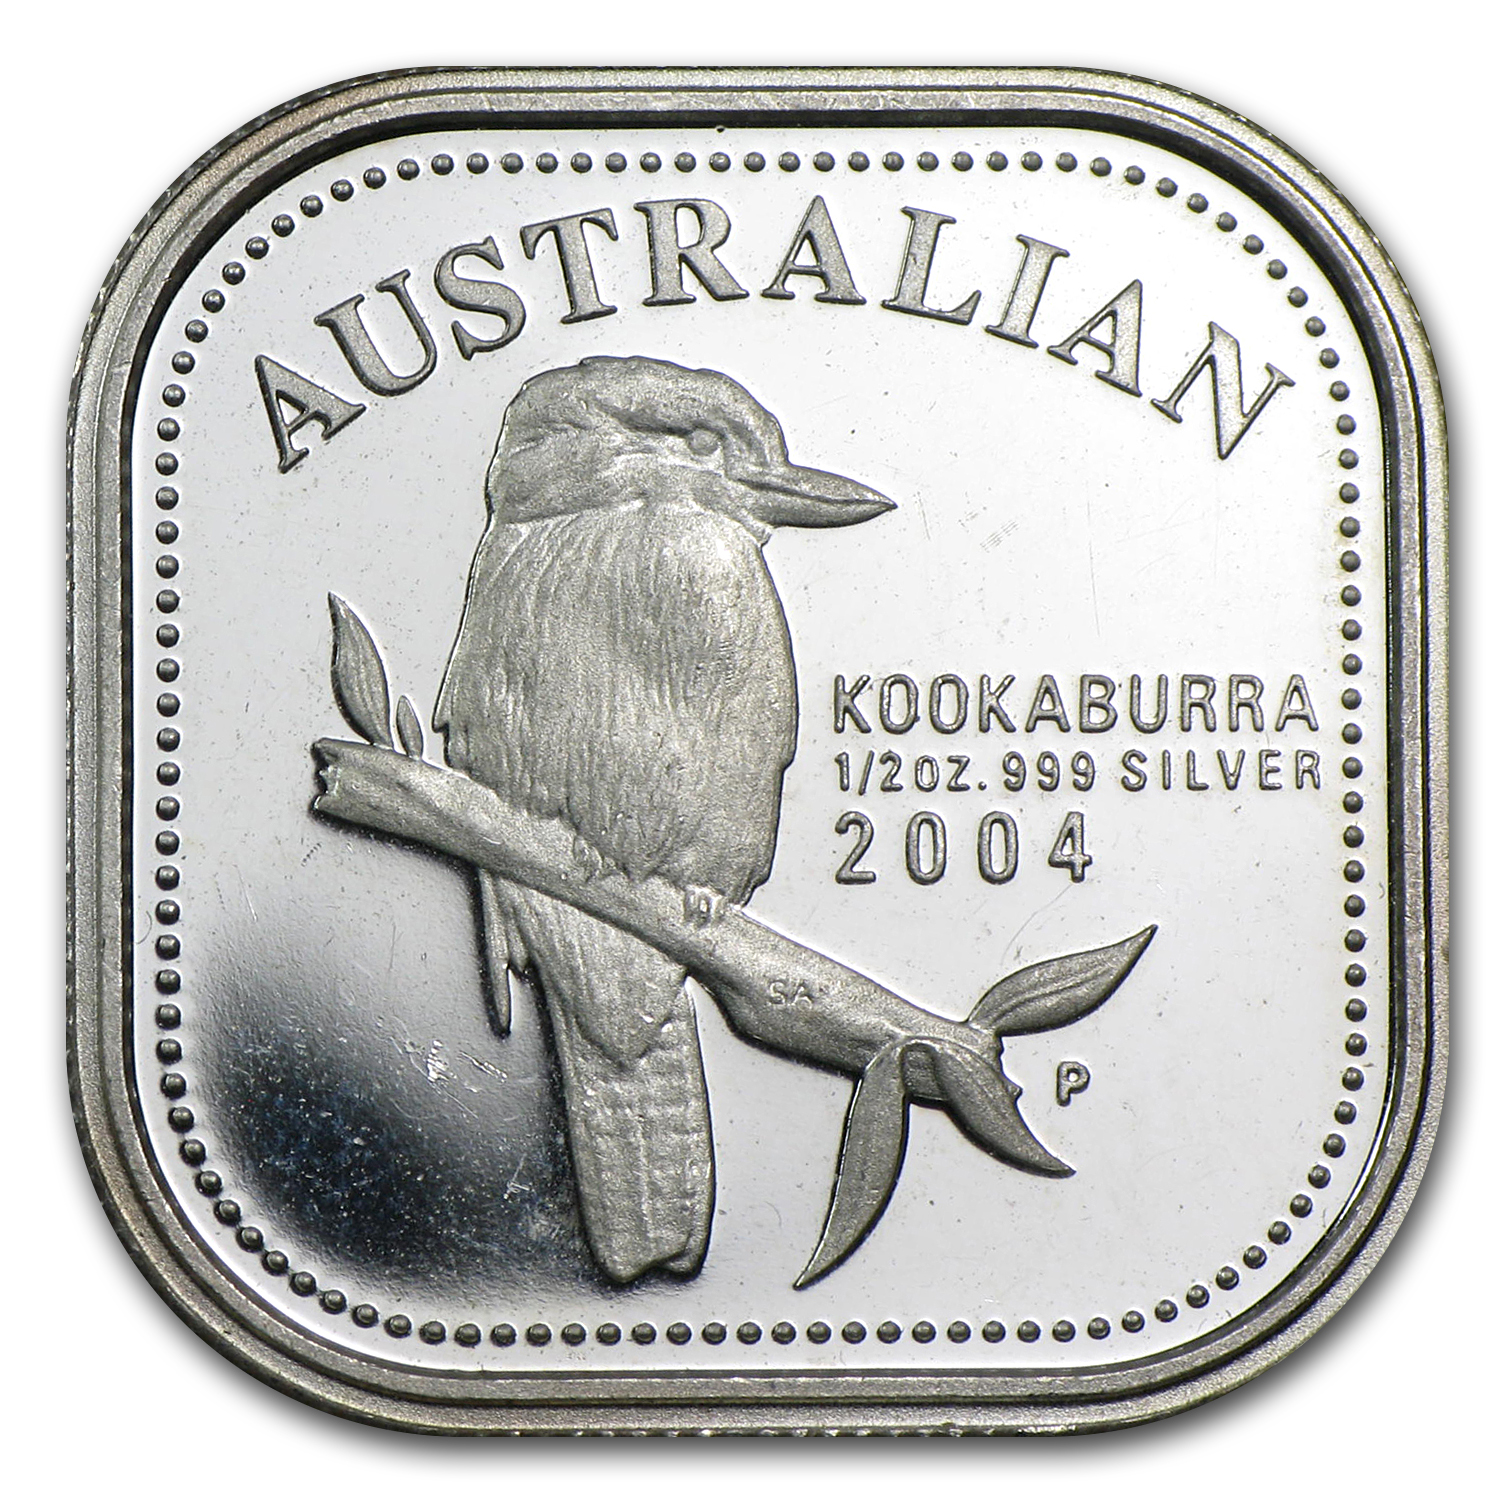 2004 1/2 oz Silver Australian Kookaburra Proof (Light abrasions)